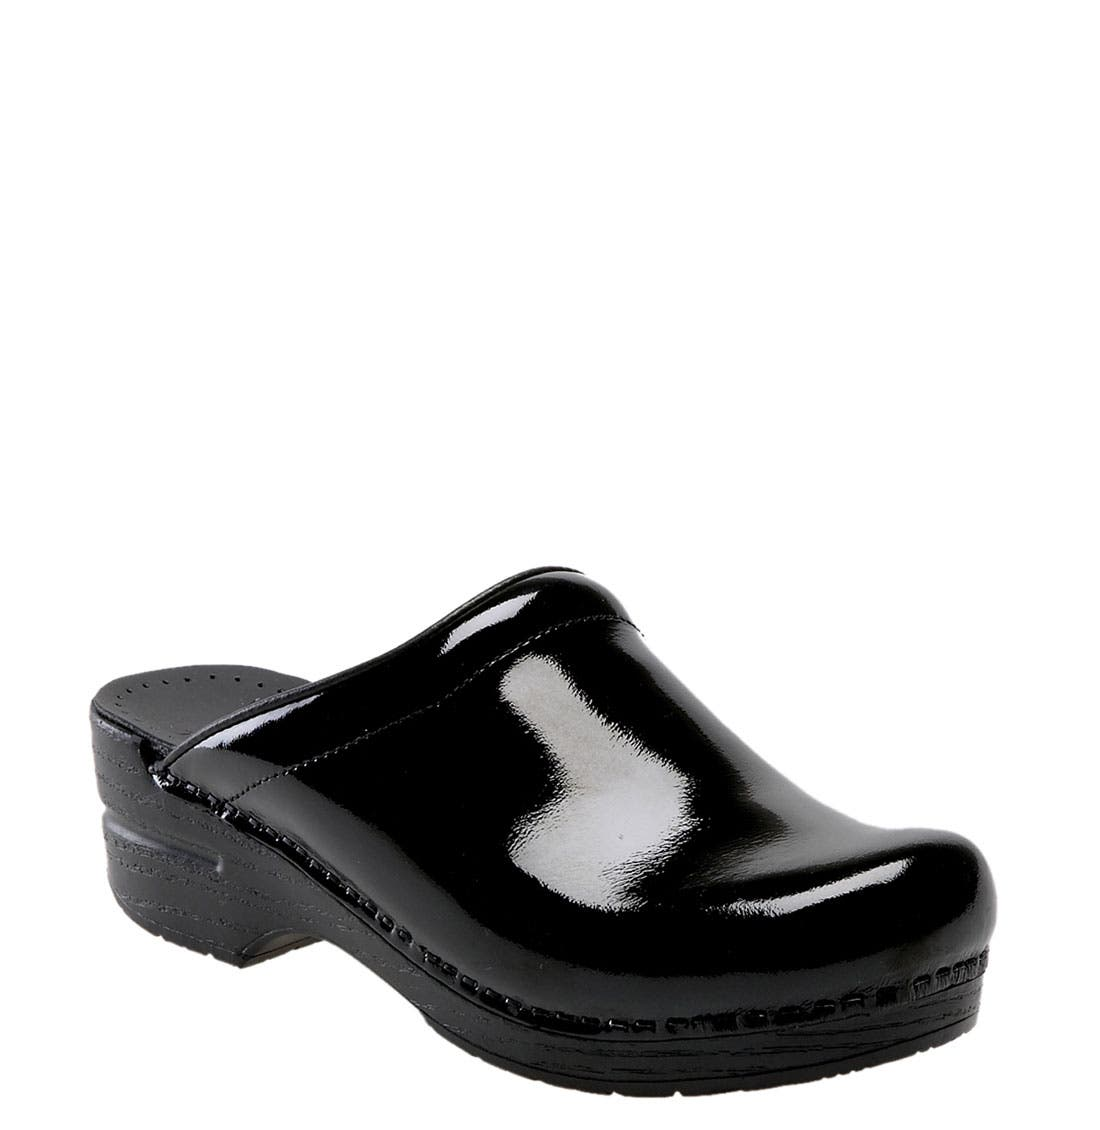 Main Image - Dansko 'Sonja' Patent Leather Clog